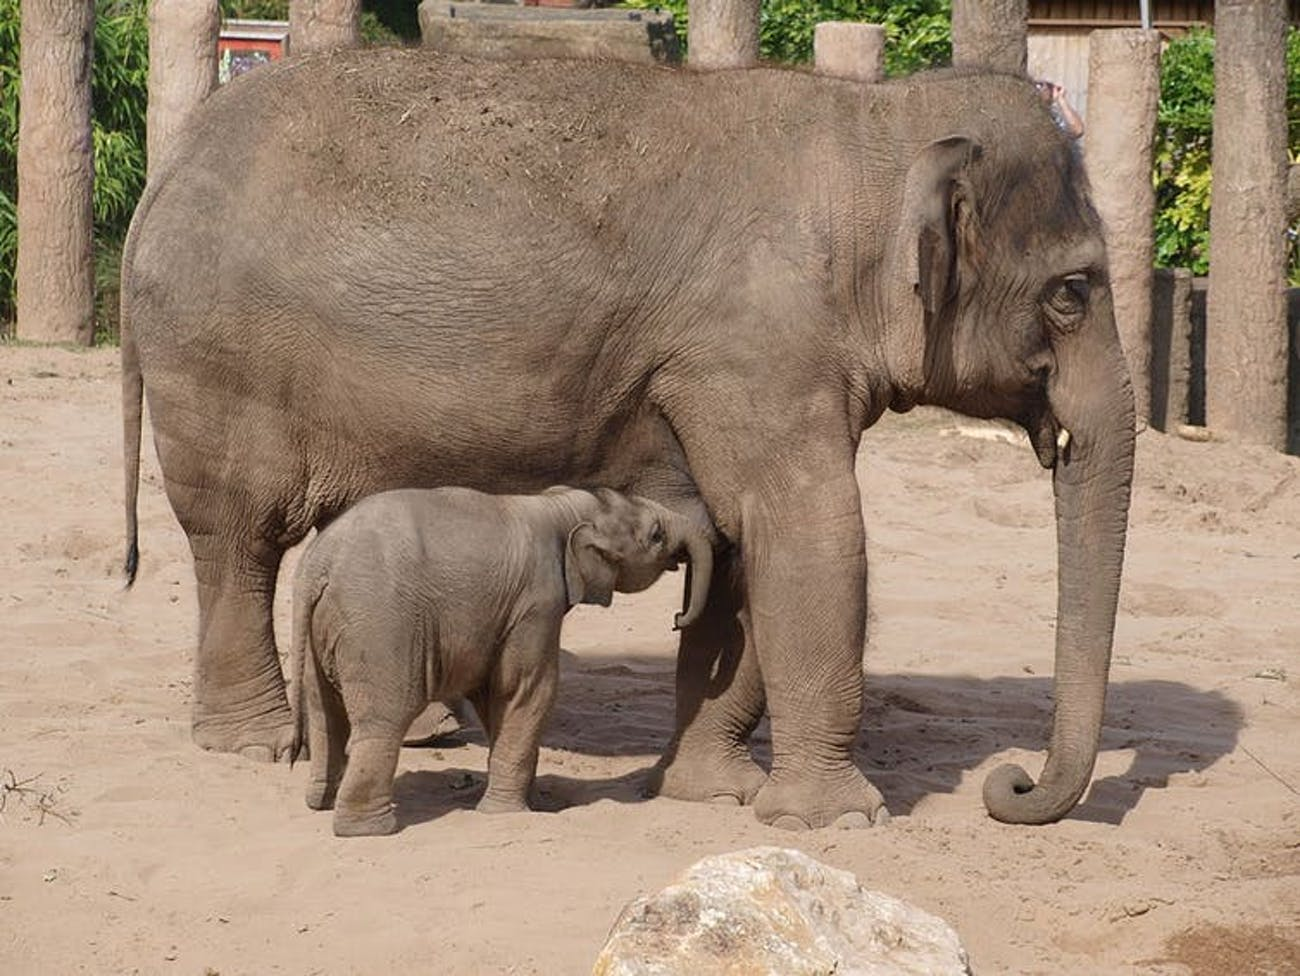 Elephants are known to have strong bonds and mourn for their dead.